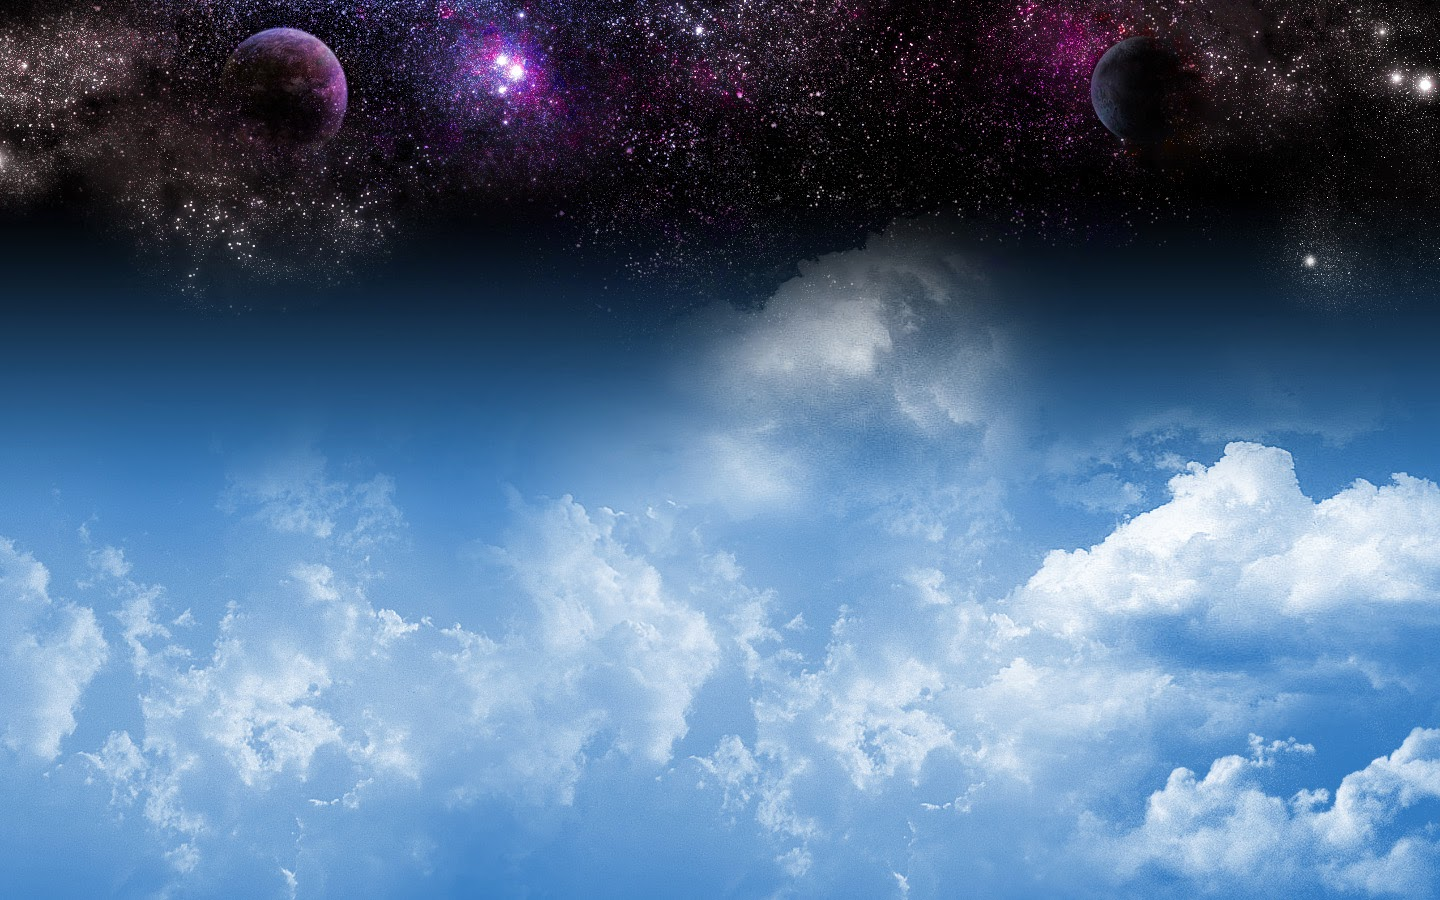 Wallpapers HQ   18 Fantasy Astronomy HD Wallpapers 1440x900